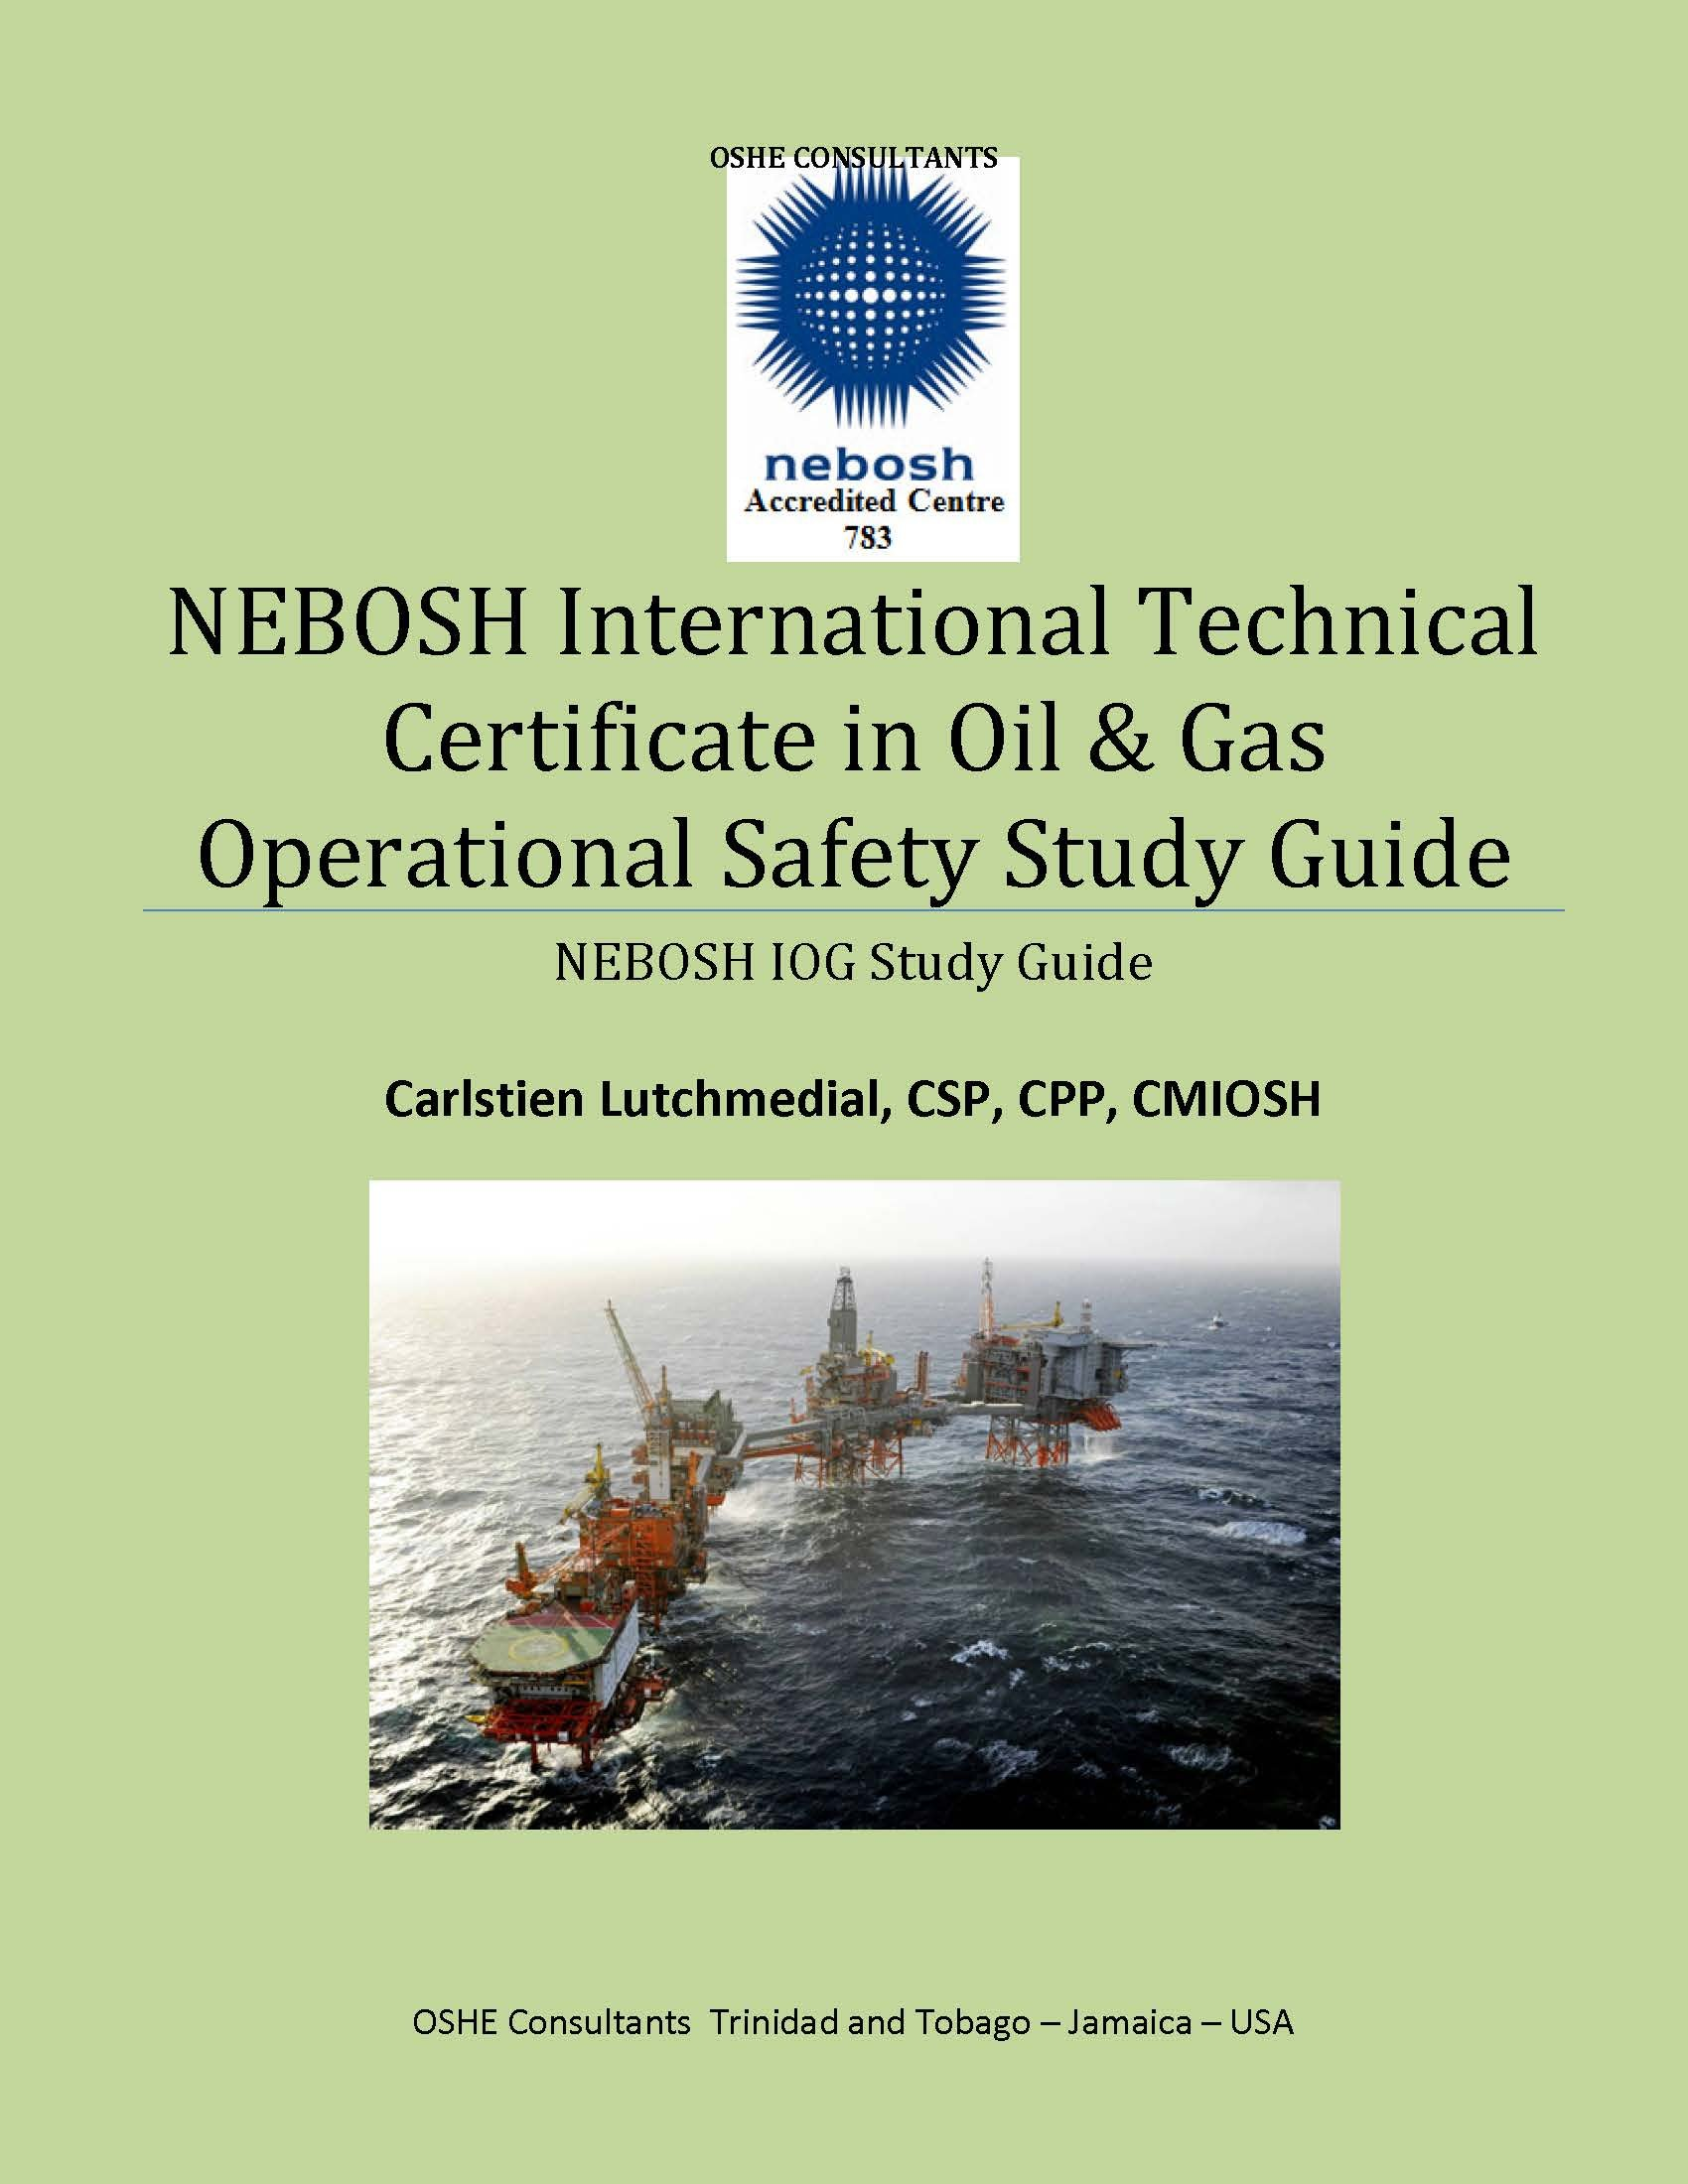 NEBOSH OIL AND GAS STUDY MATERIAL PDF DOWNLOAD